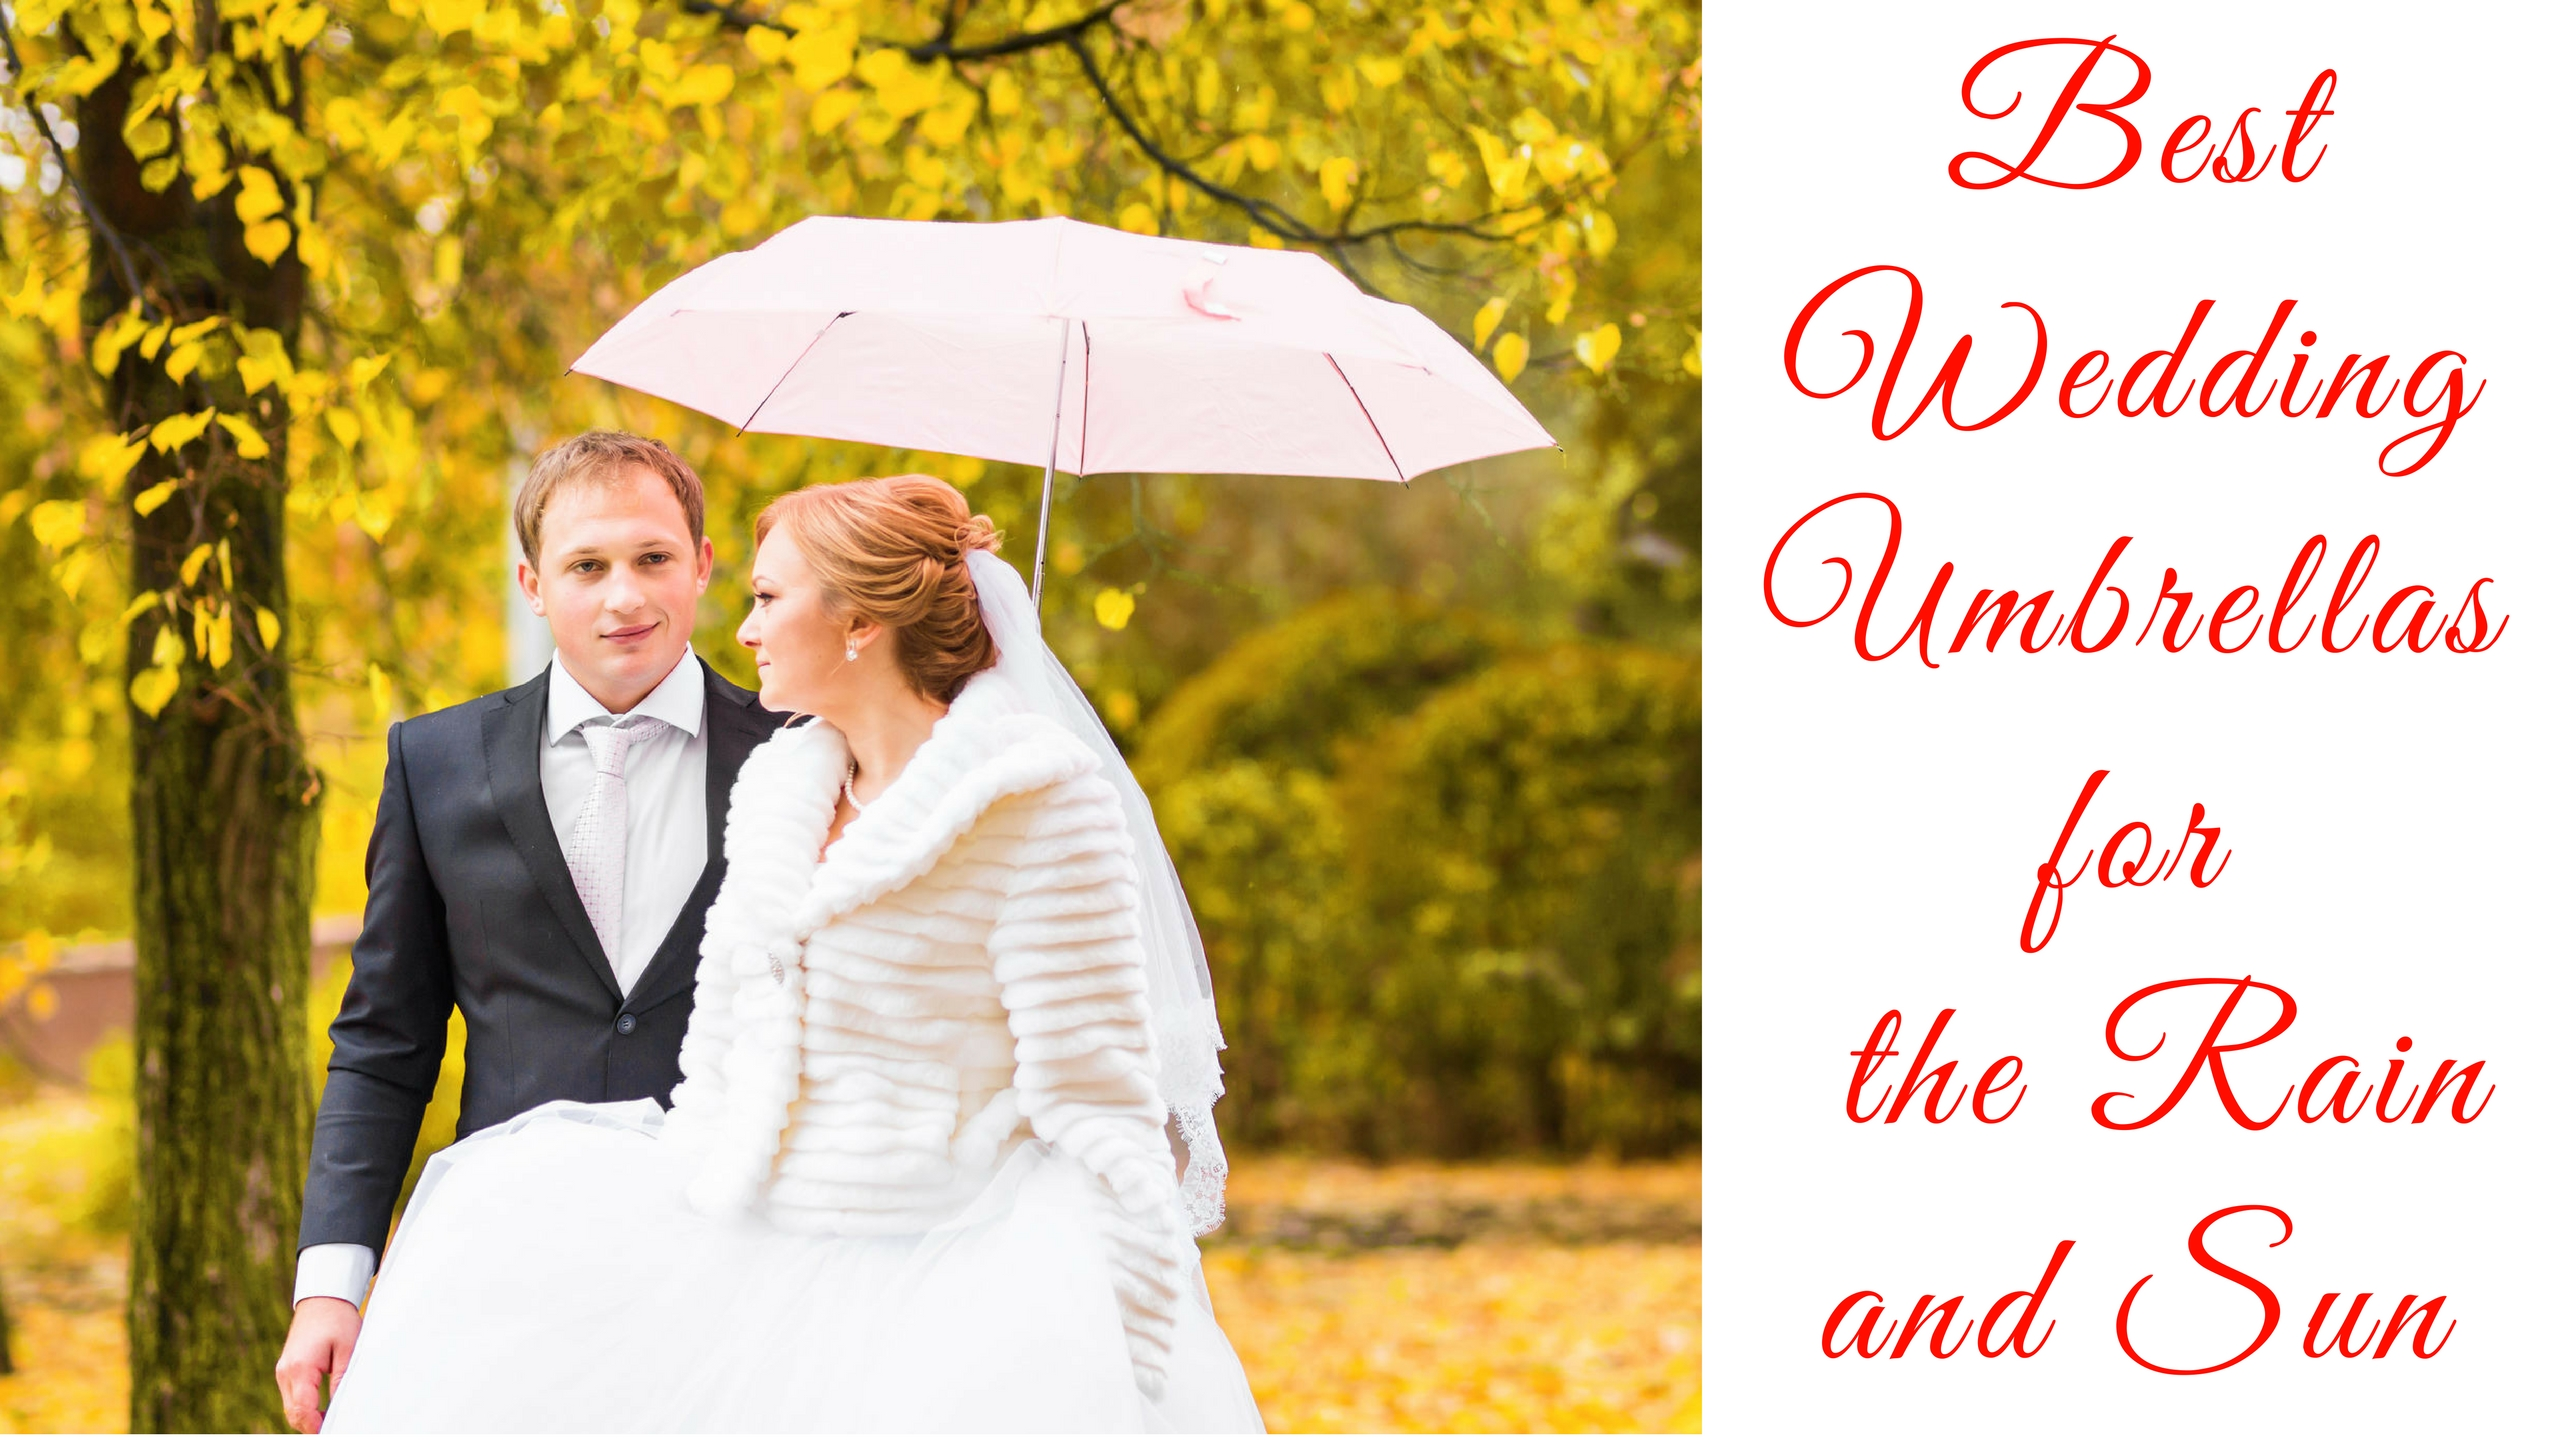 best-wedding-umbrellas-for-the-rain-and-sun